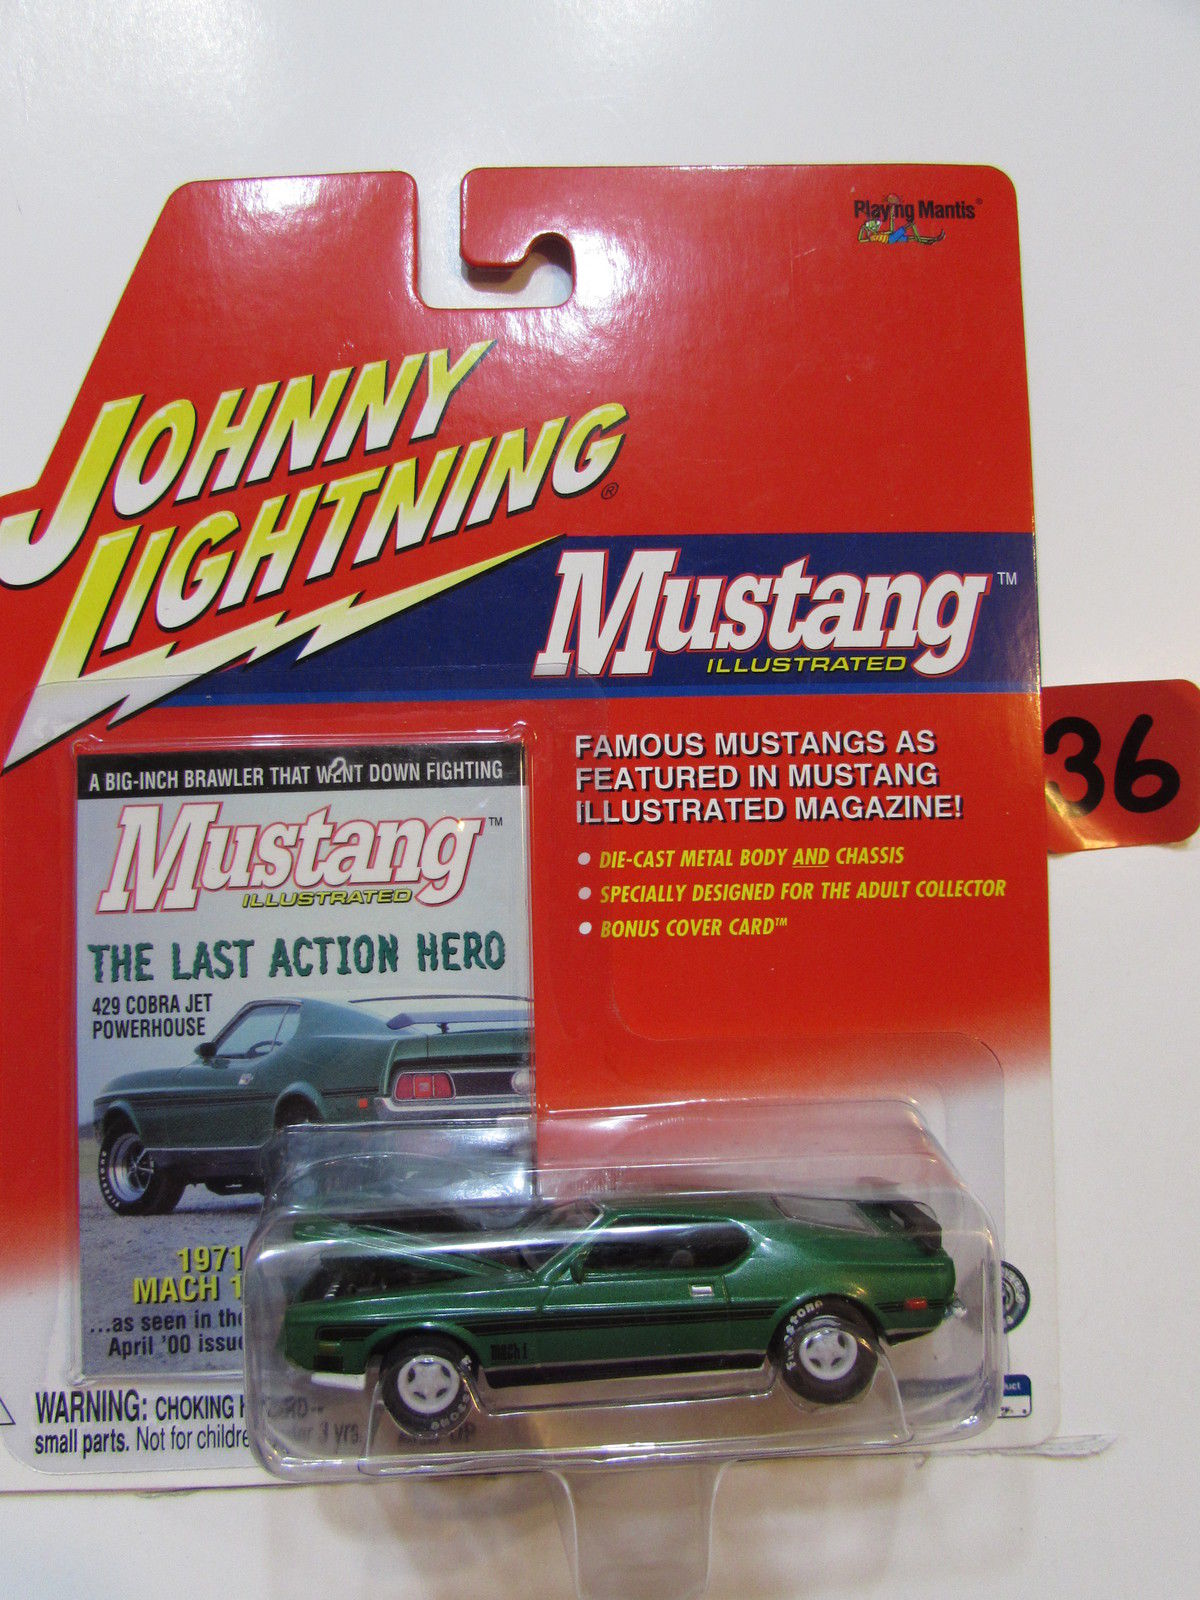 JOHNNY LIGHTNING 2001 MUSTANG ILLUSTRATED - 1971 MACH 1 WHITE LIGHTNING